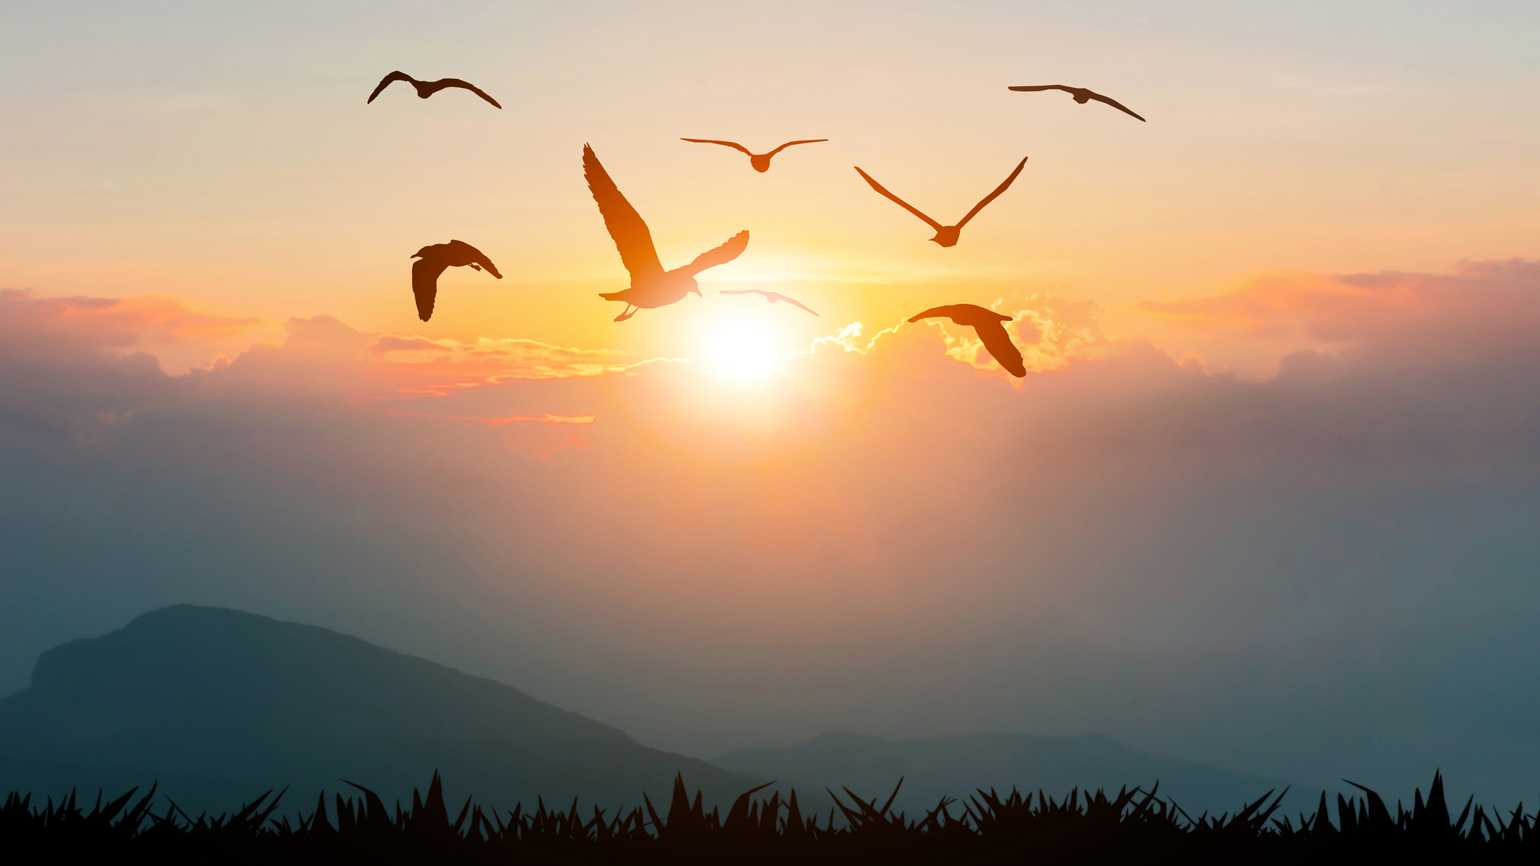 SIlouettes of birds flying during sunset.